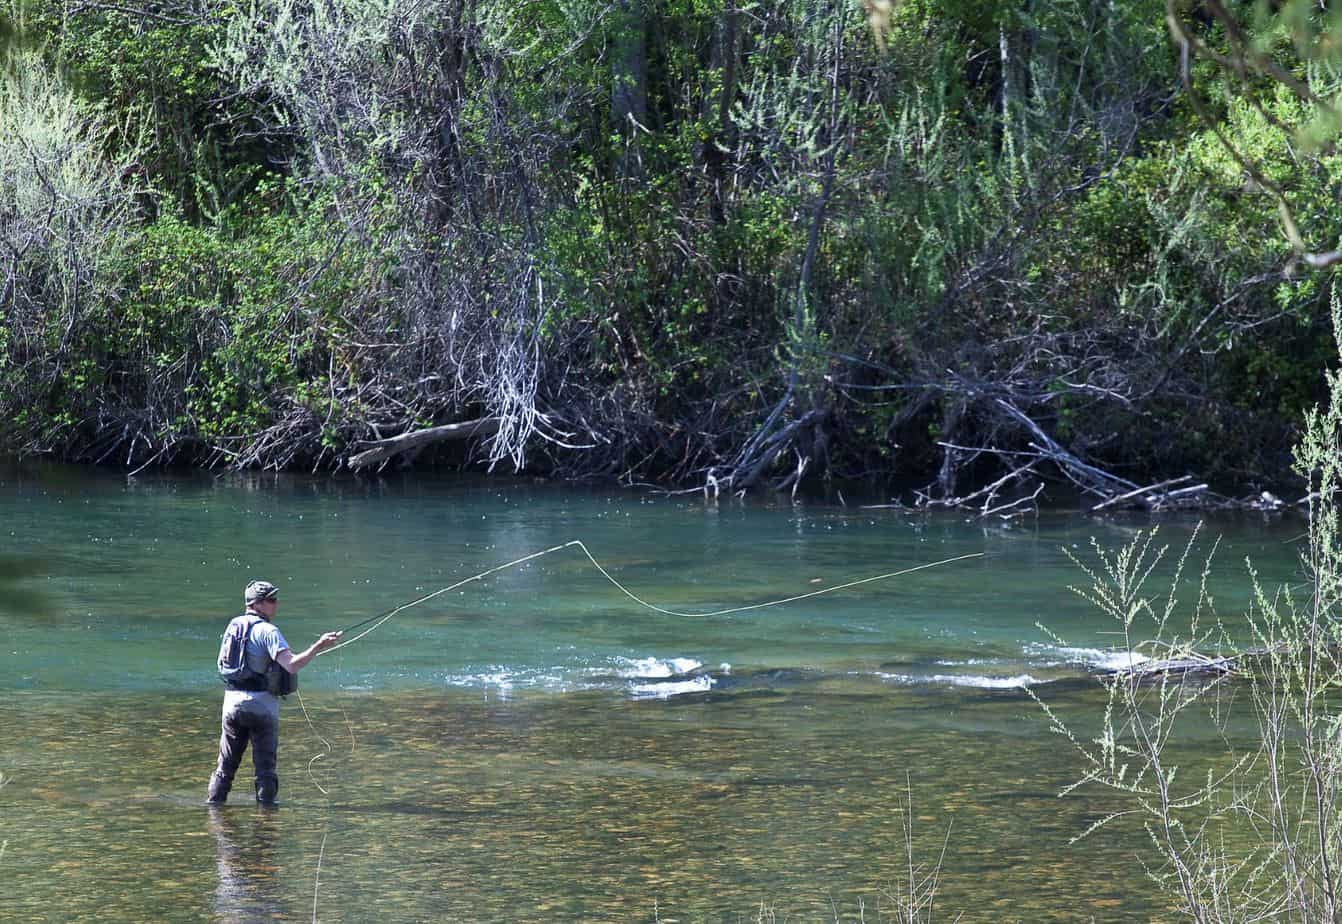 Is Fly Fishing Difficult?